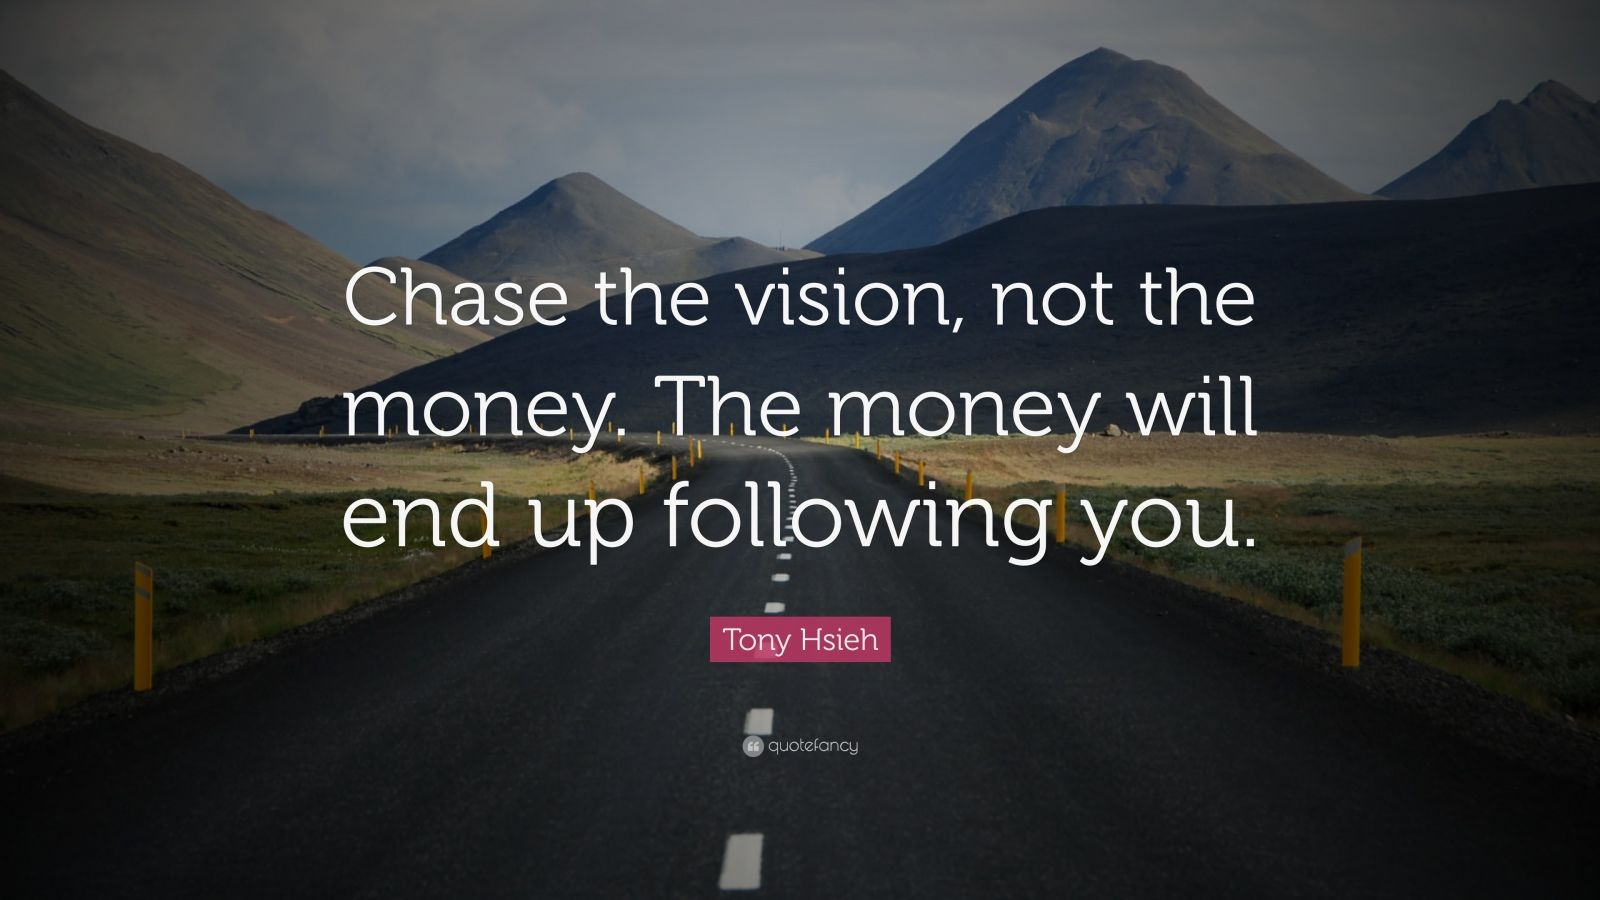 Funny Brainy Quotes Wallpaper Tony Hsieh Quote Chase The Vision Not The Money The